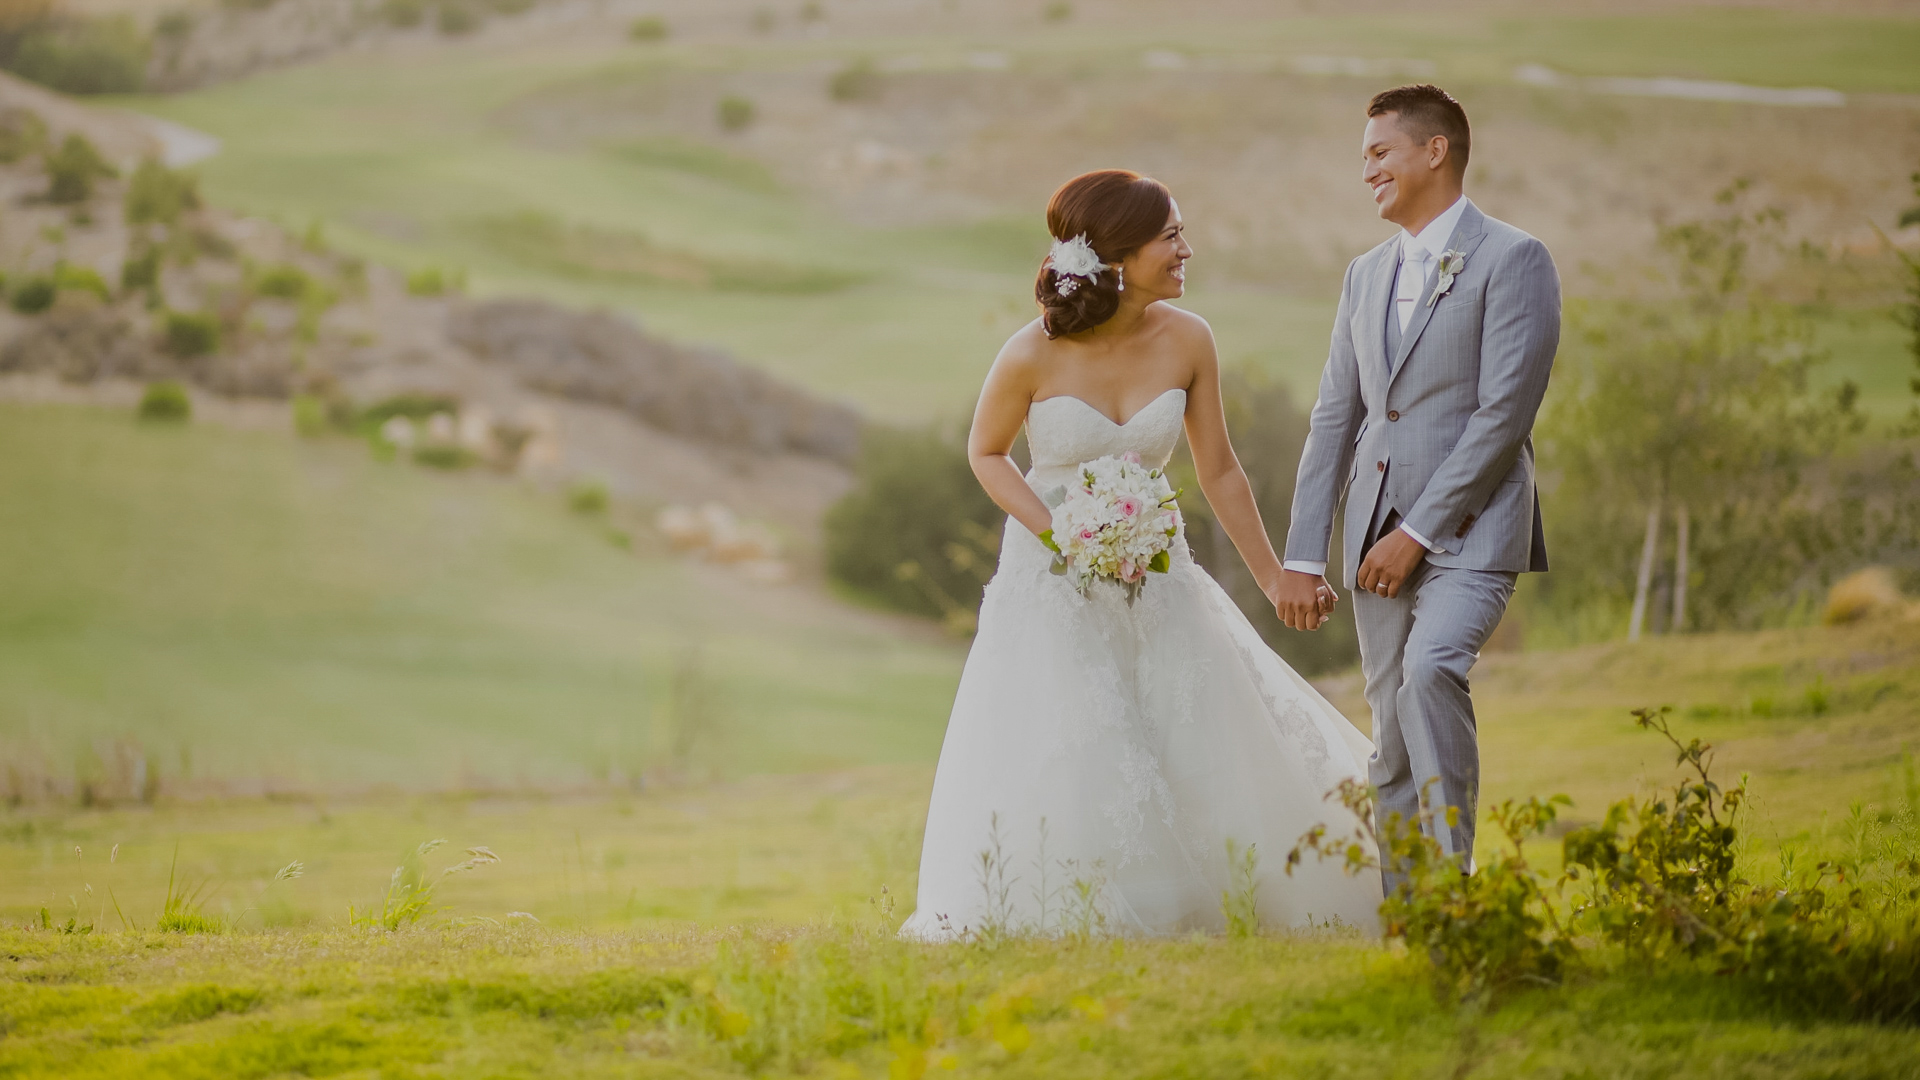 Check portfolios, pricing and availability for wedding photographers in Los Angeles